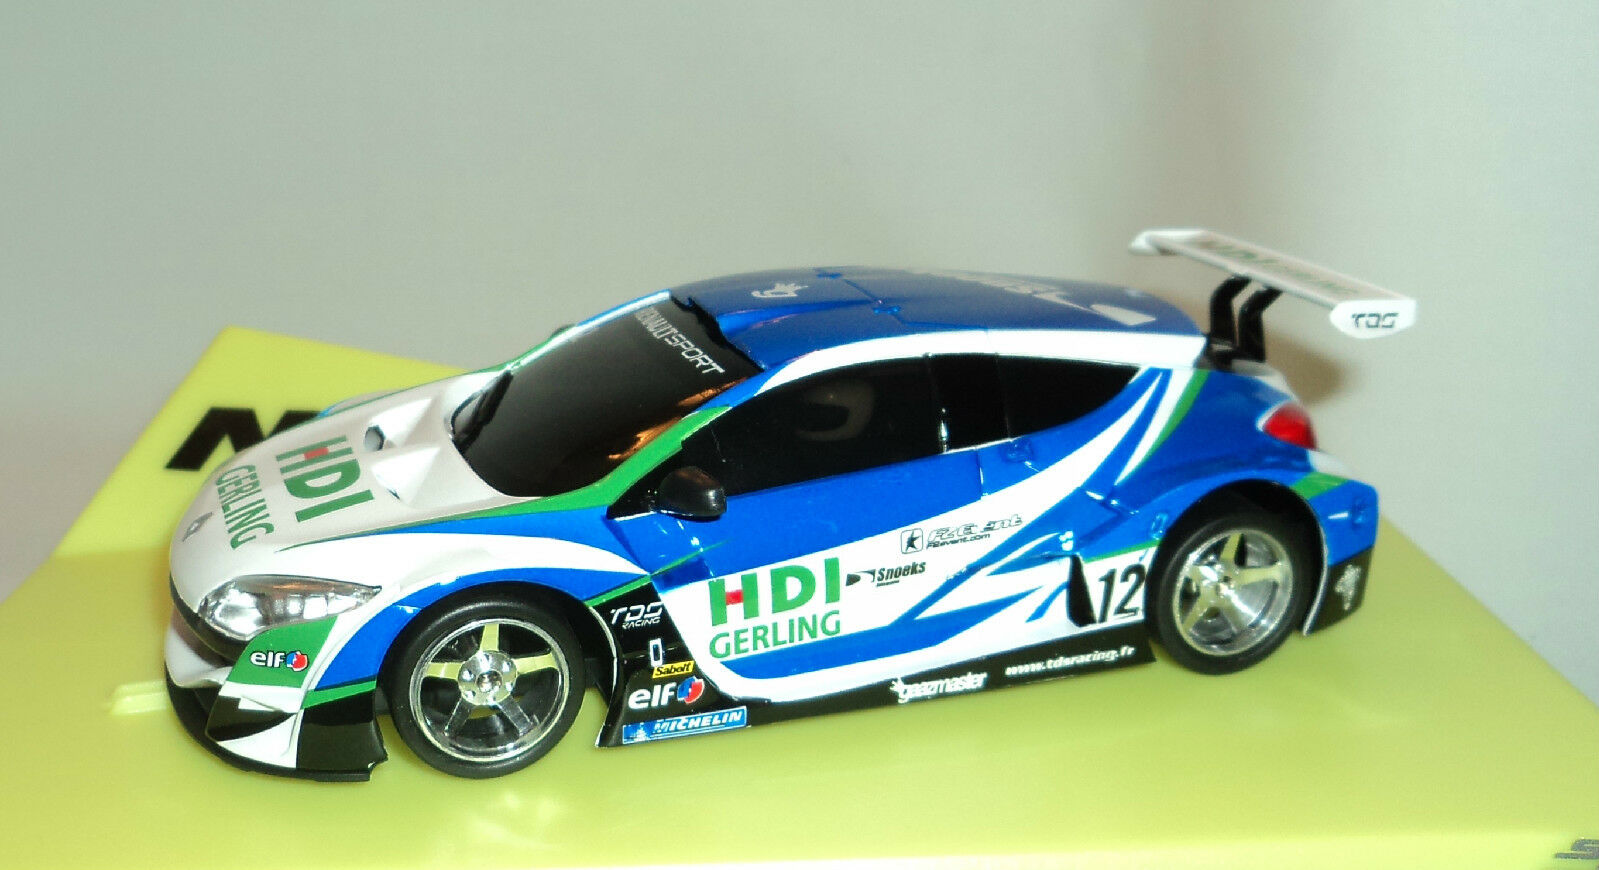 Ninco 50626 Renault Megane Trophy HDI GERLING Lightning NC12 moteur 1 32 Slot Car